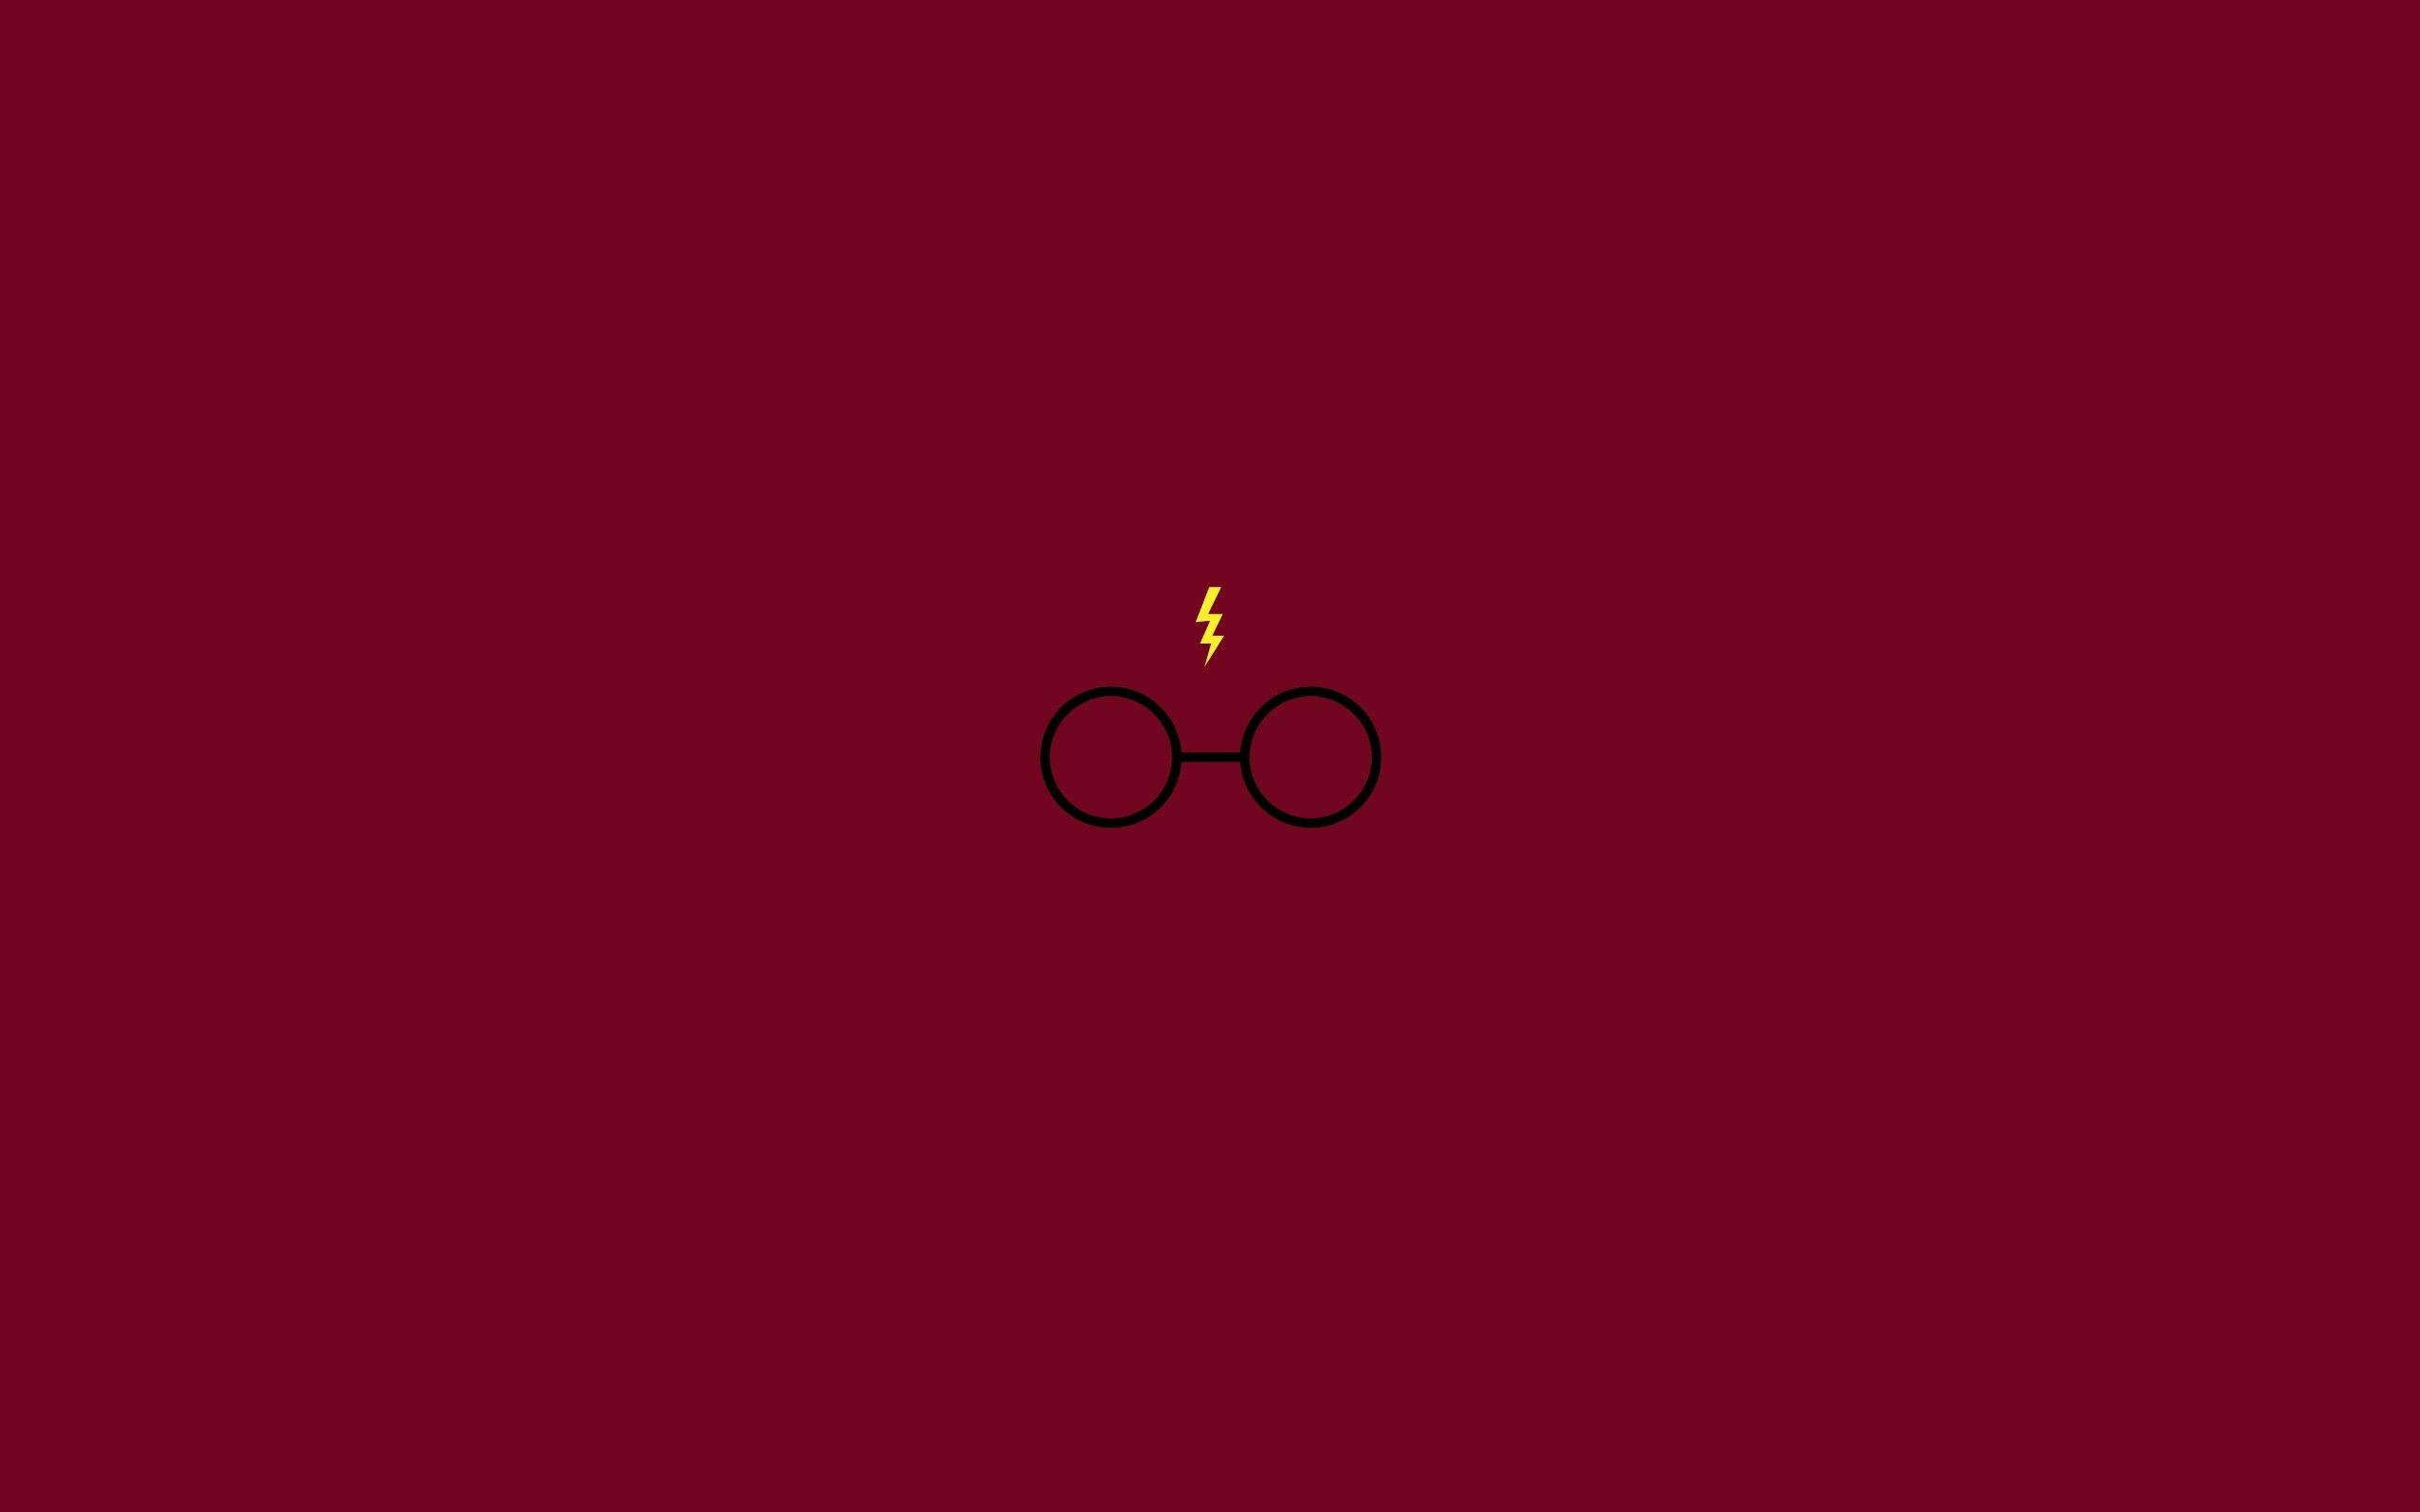 80 Gryffindor Wallpapers On Wallpaperplay Harry Potter Wallpaper Harry Potter Deathly Hallows Wallpaper